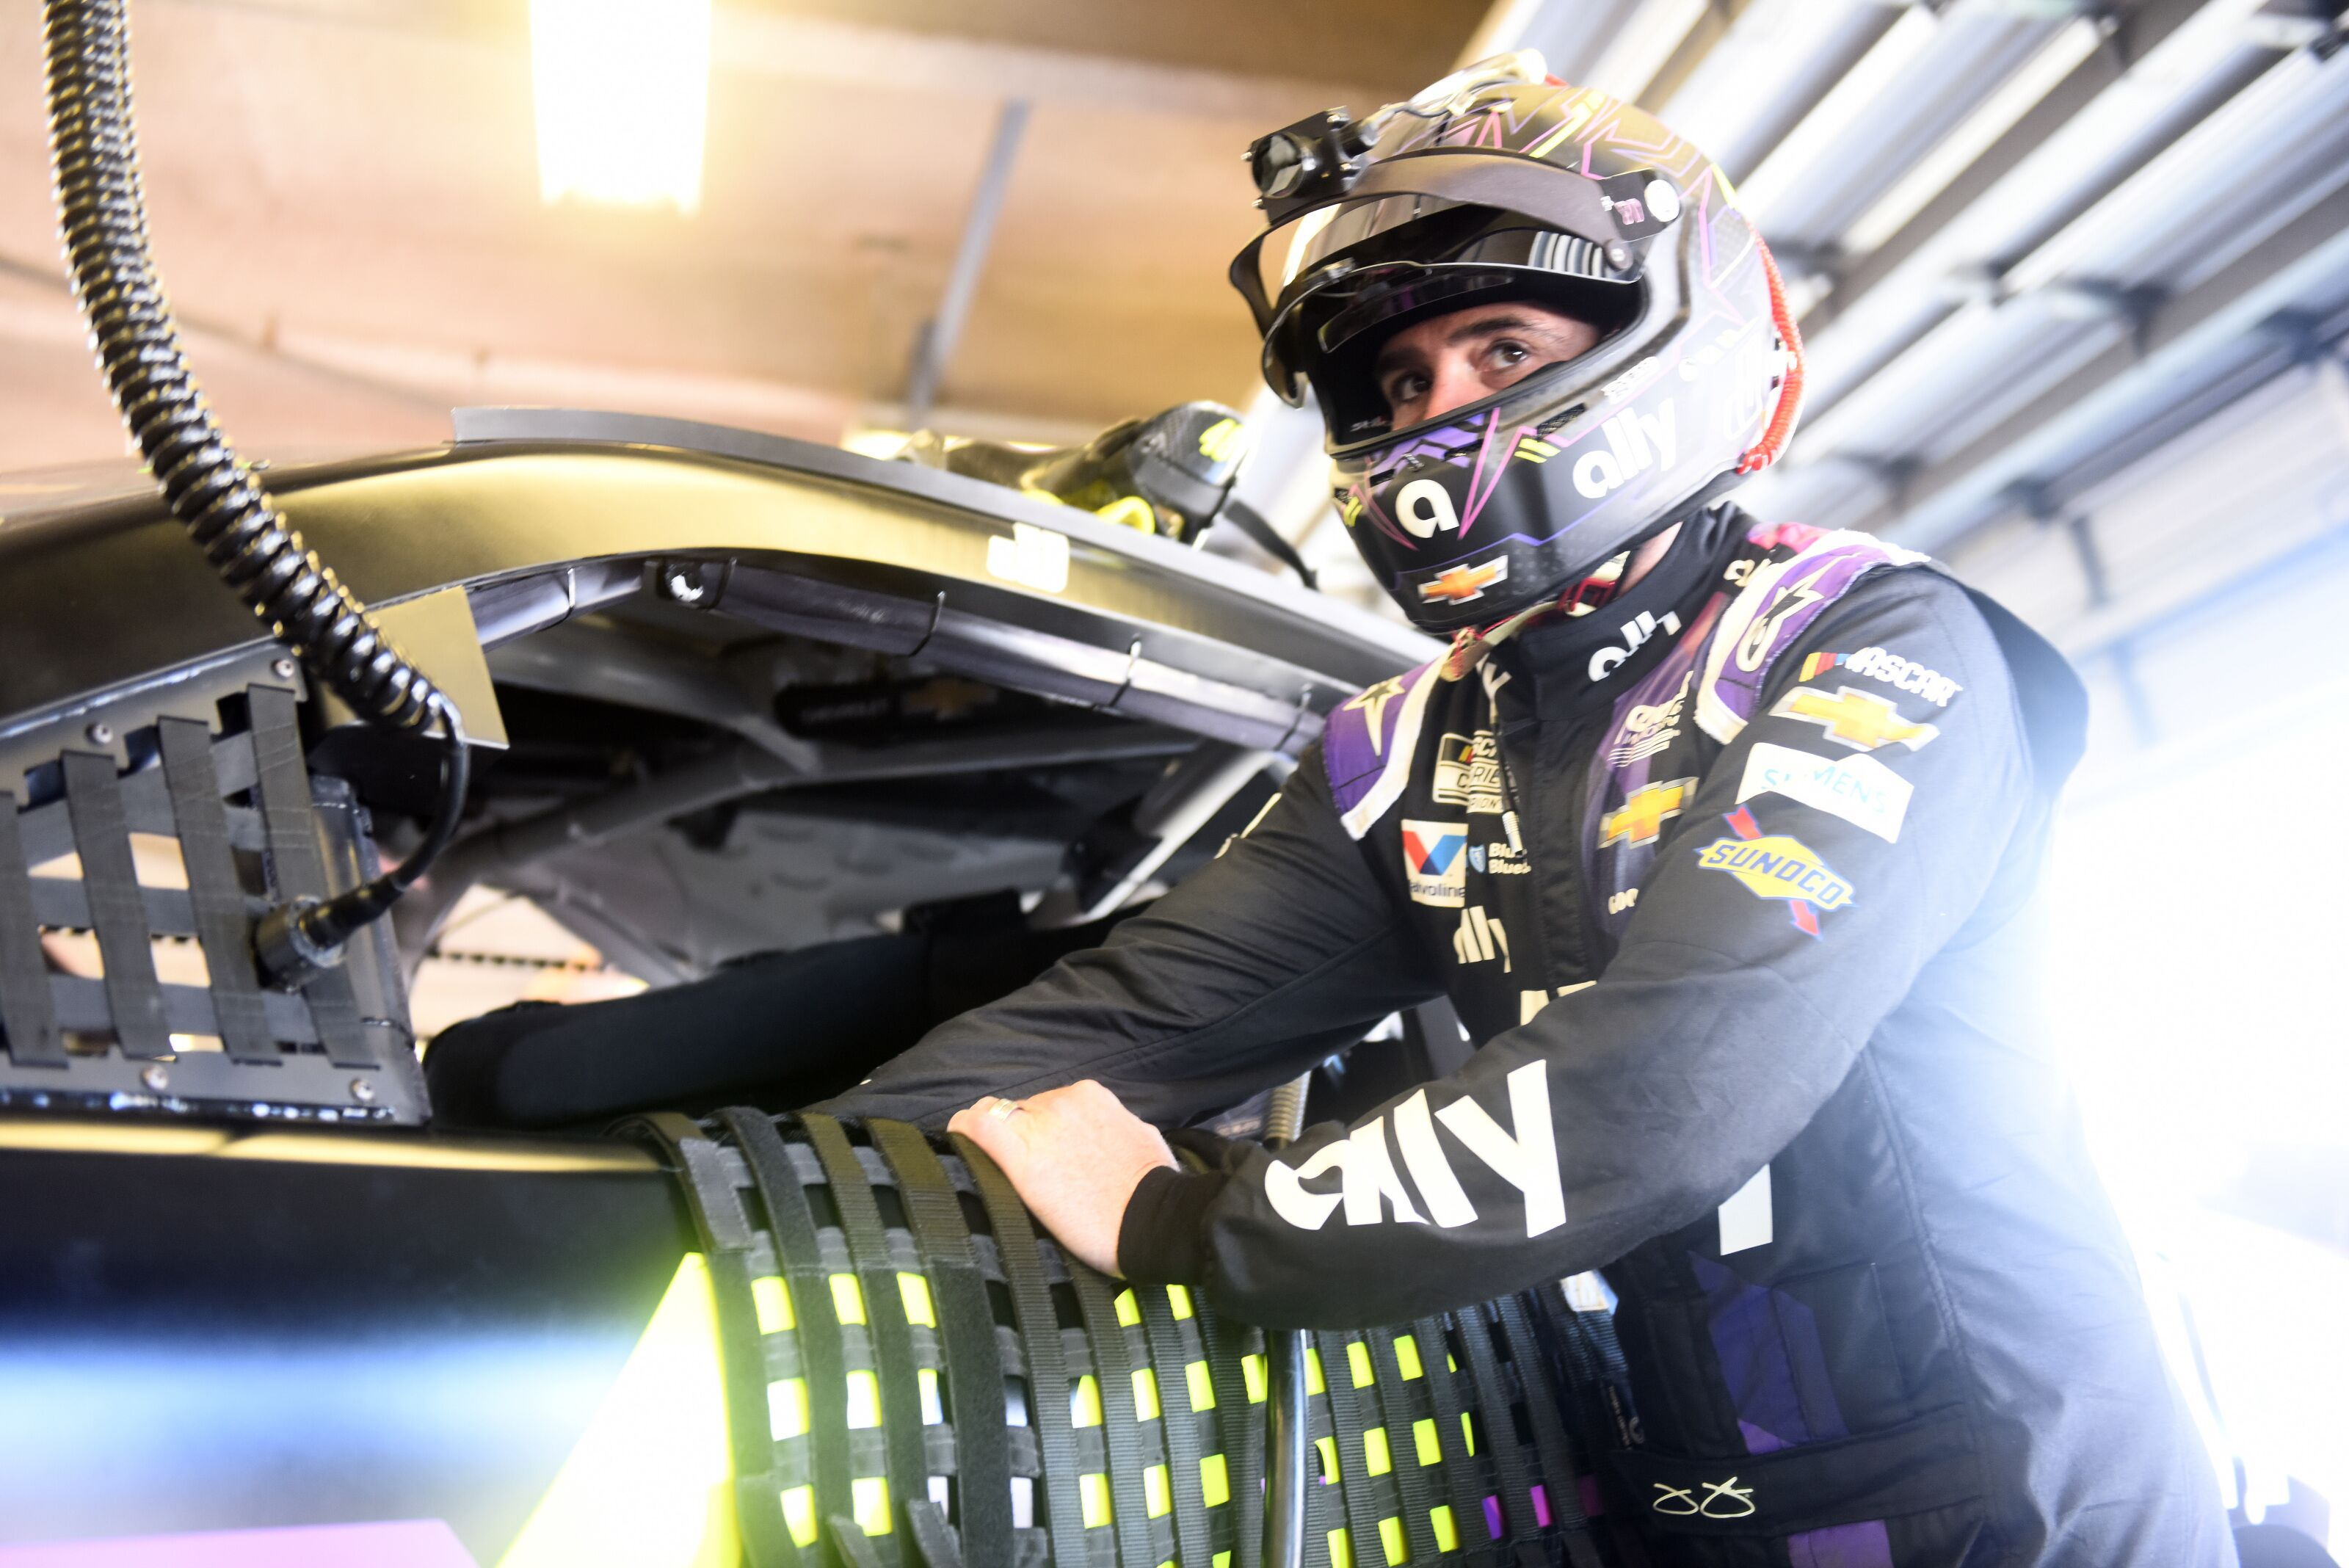 NASCAR: Jimmie Johnson 'not done racing', could return in 2021 – Beyond the Flag